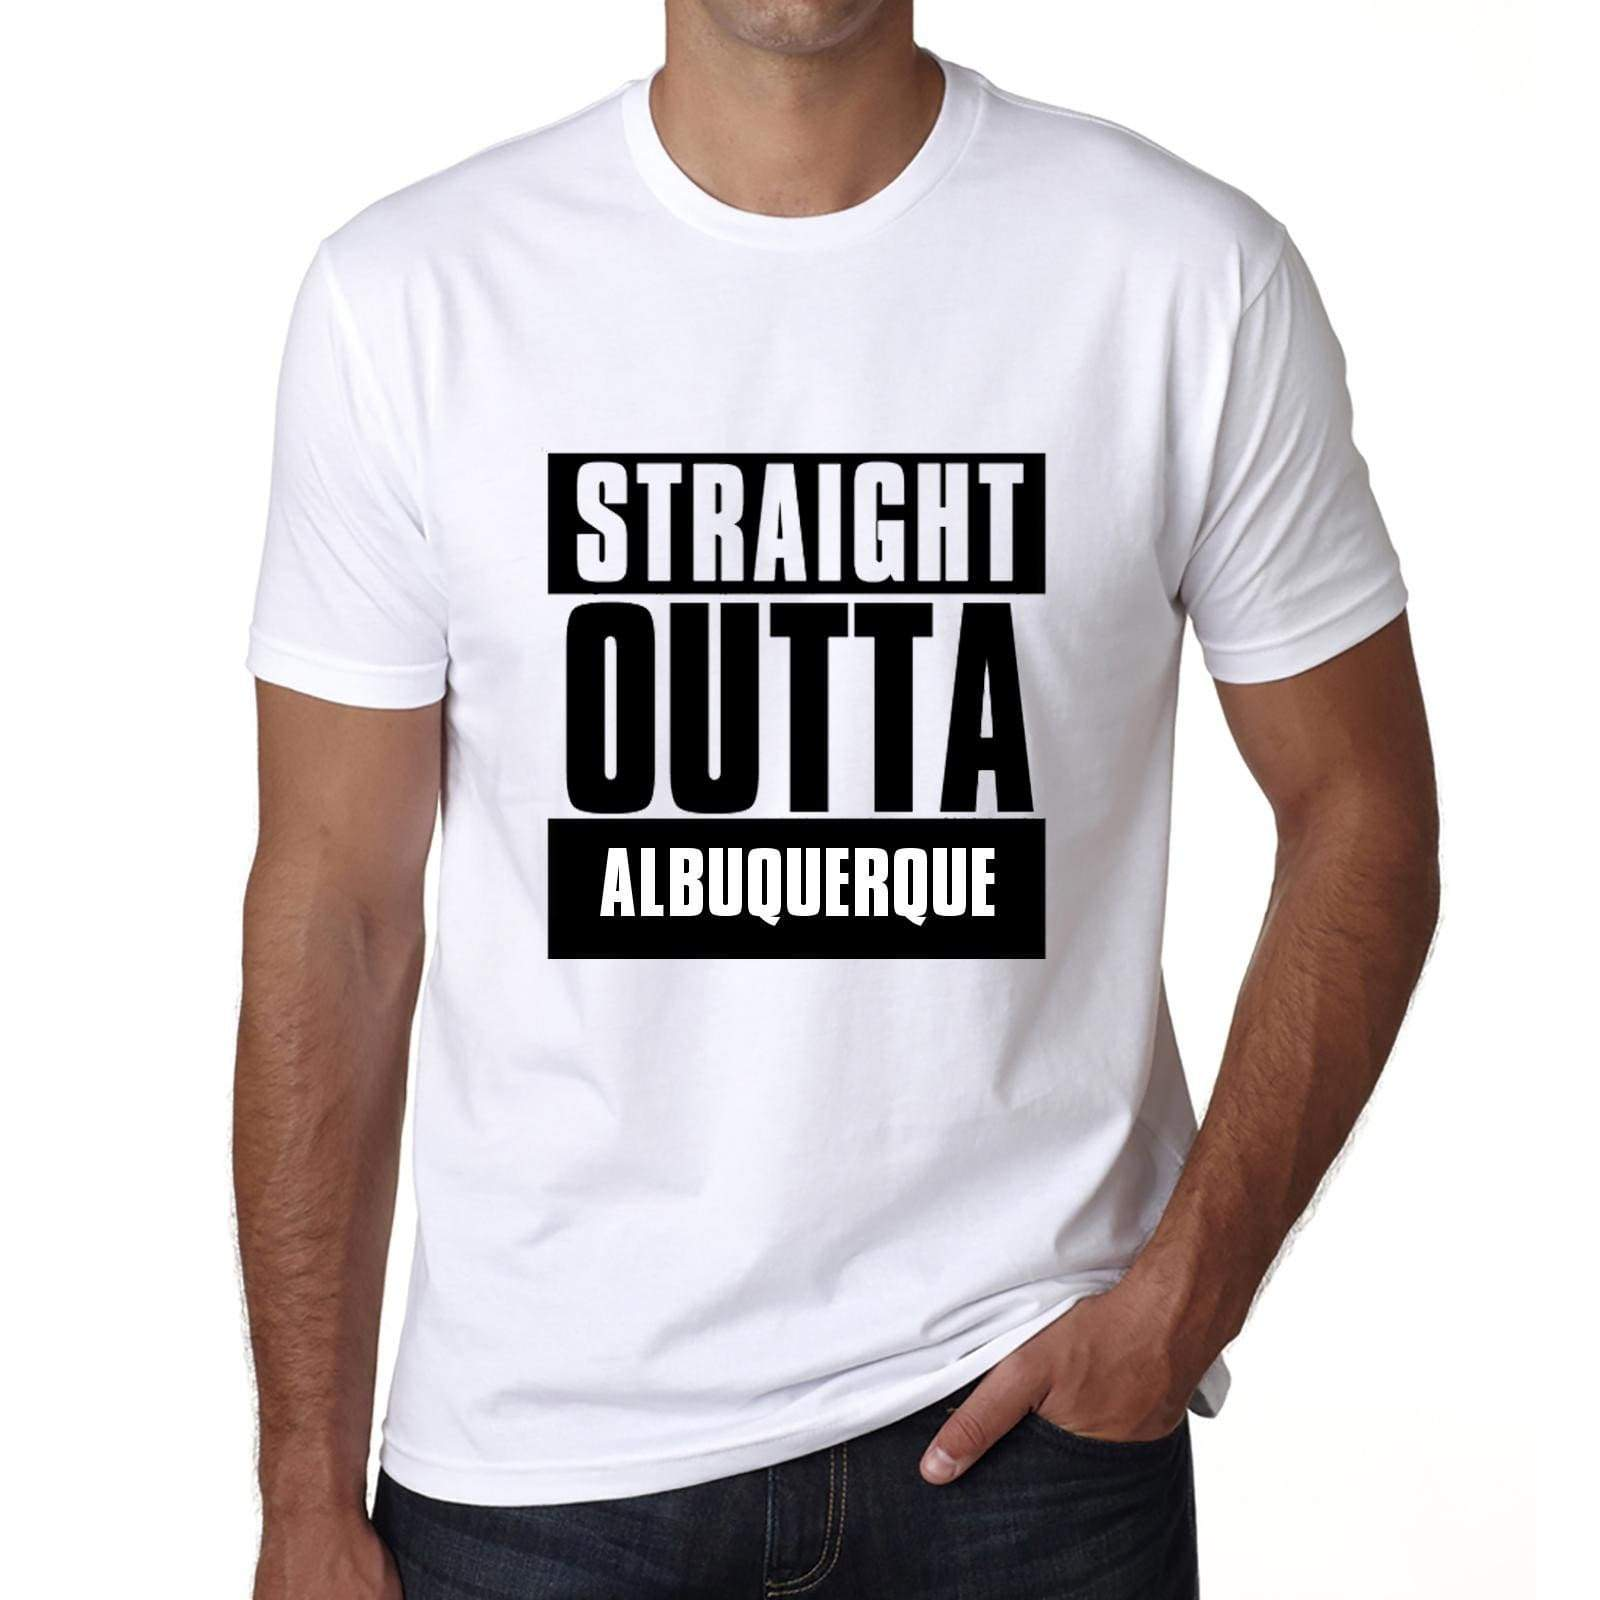 Straight Outta Albuquerque Mens Short Sleeve Round Neck T-Shirt 00027 - White / S - Casual